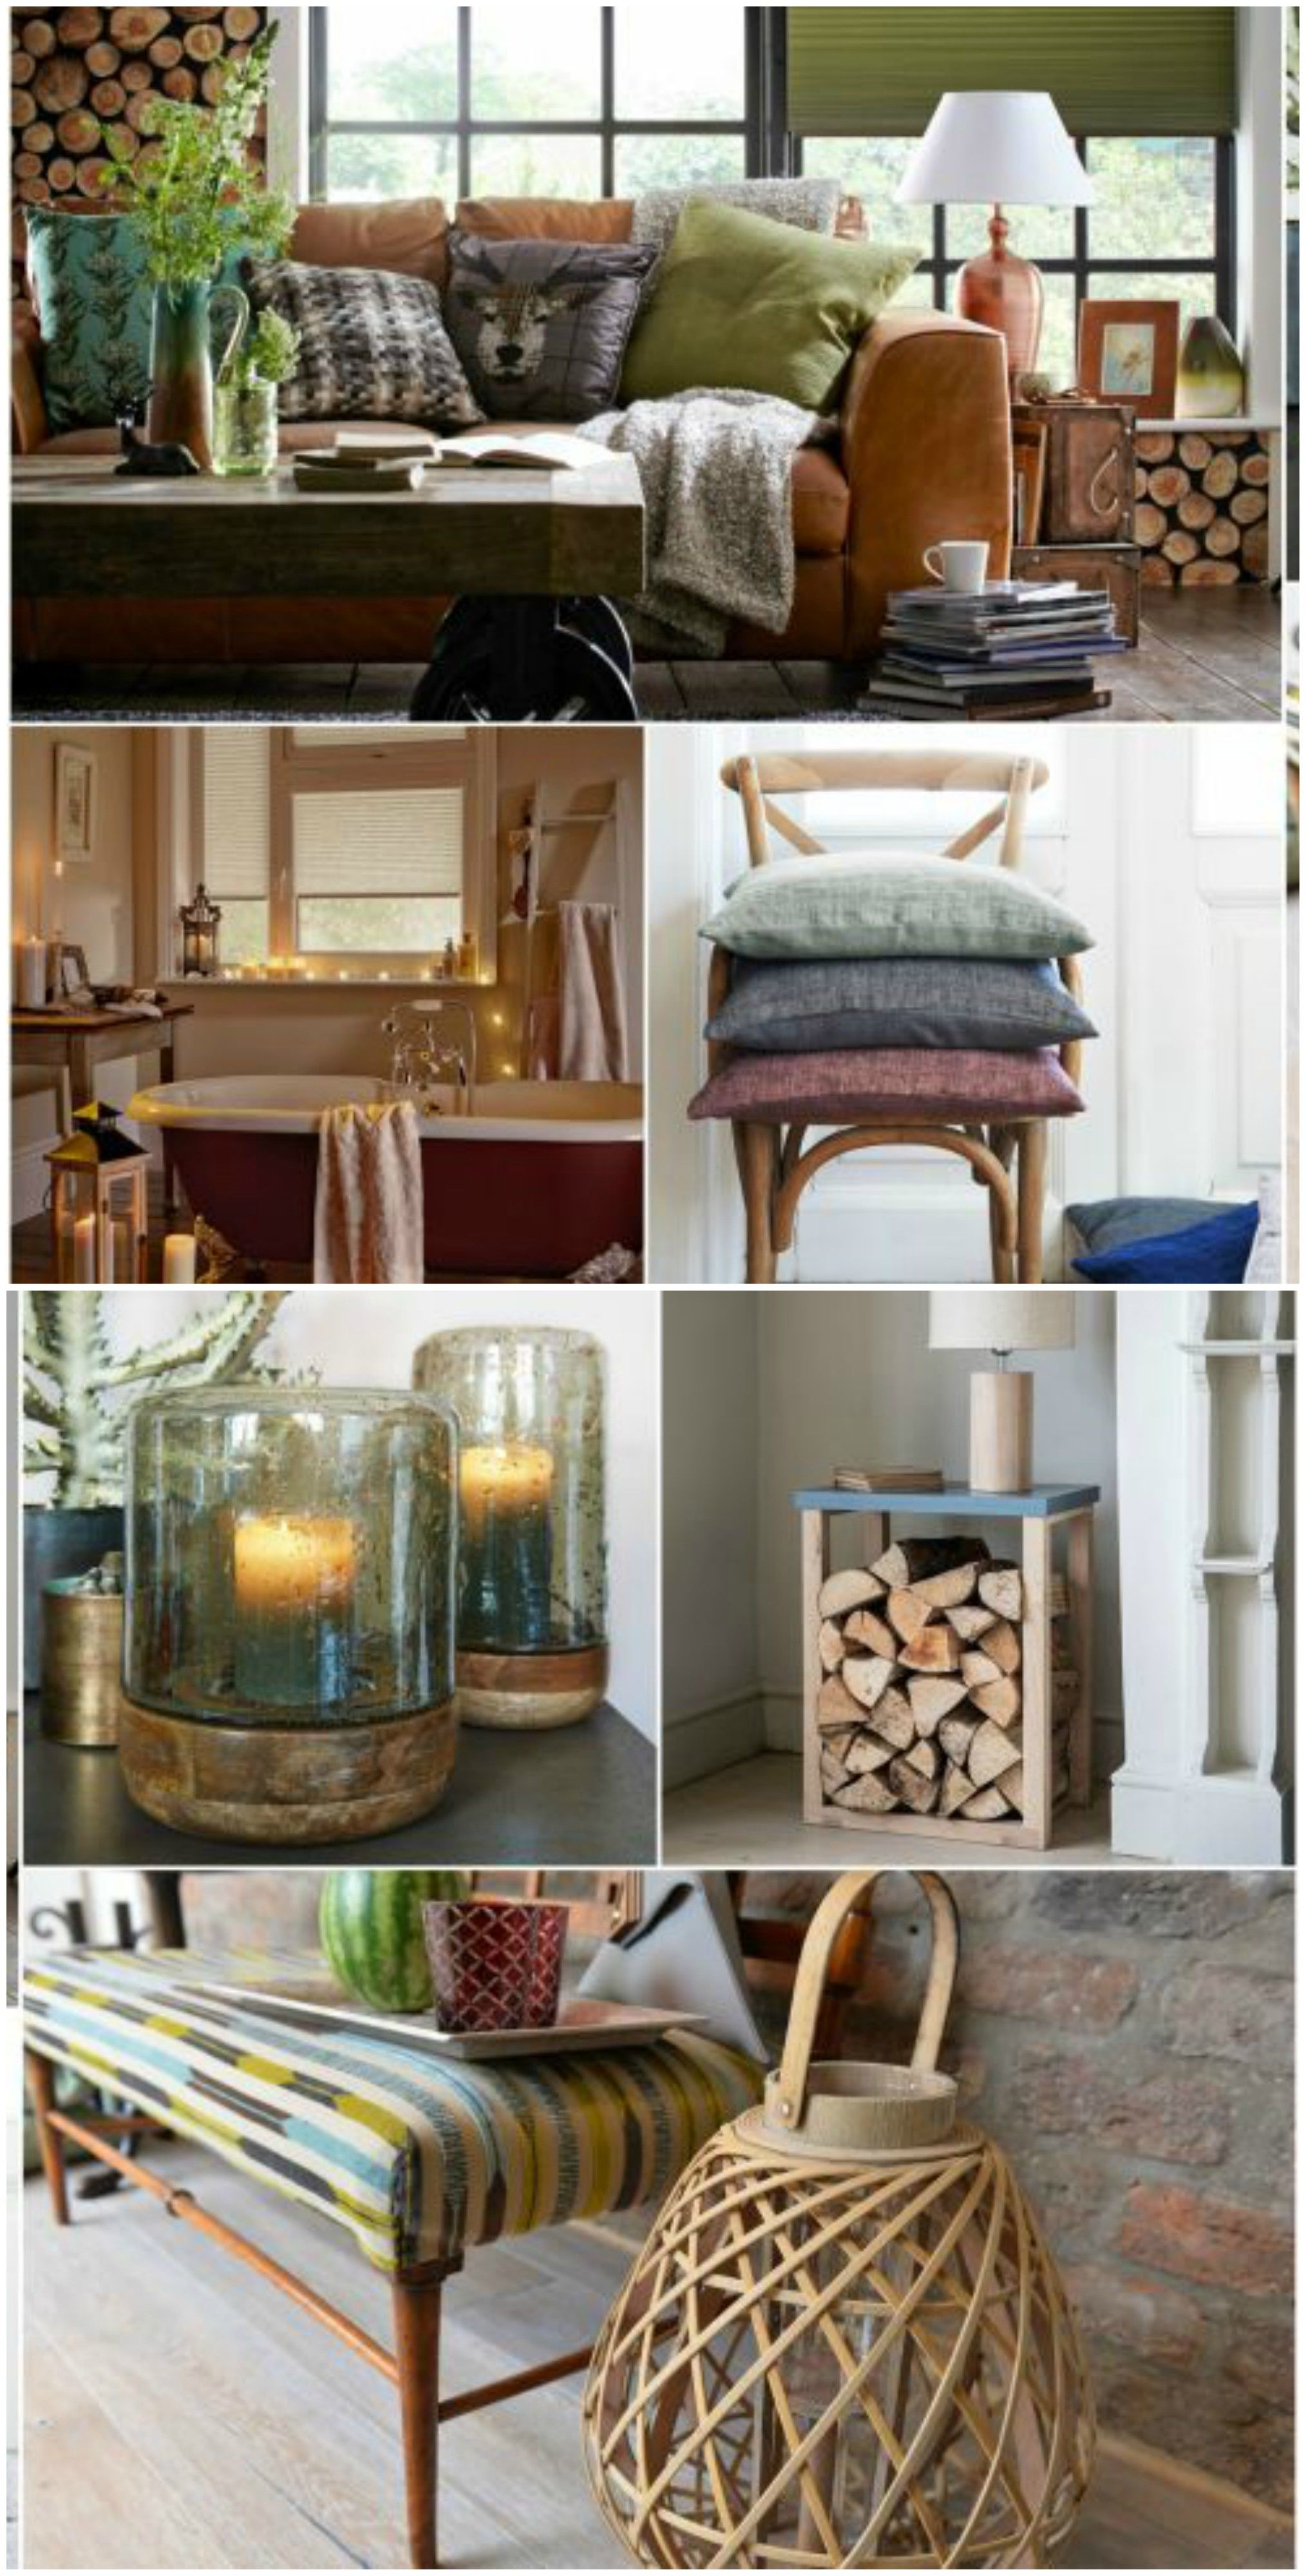 27 hygge inspired items for your home salon coin coin for Decoration hygge